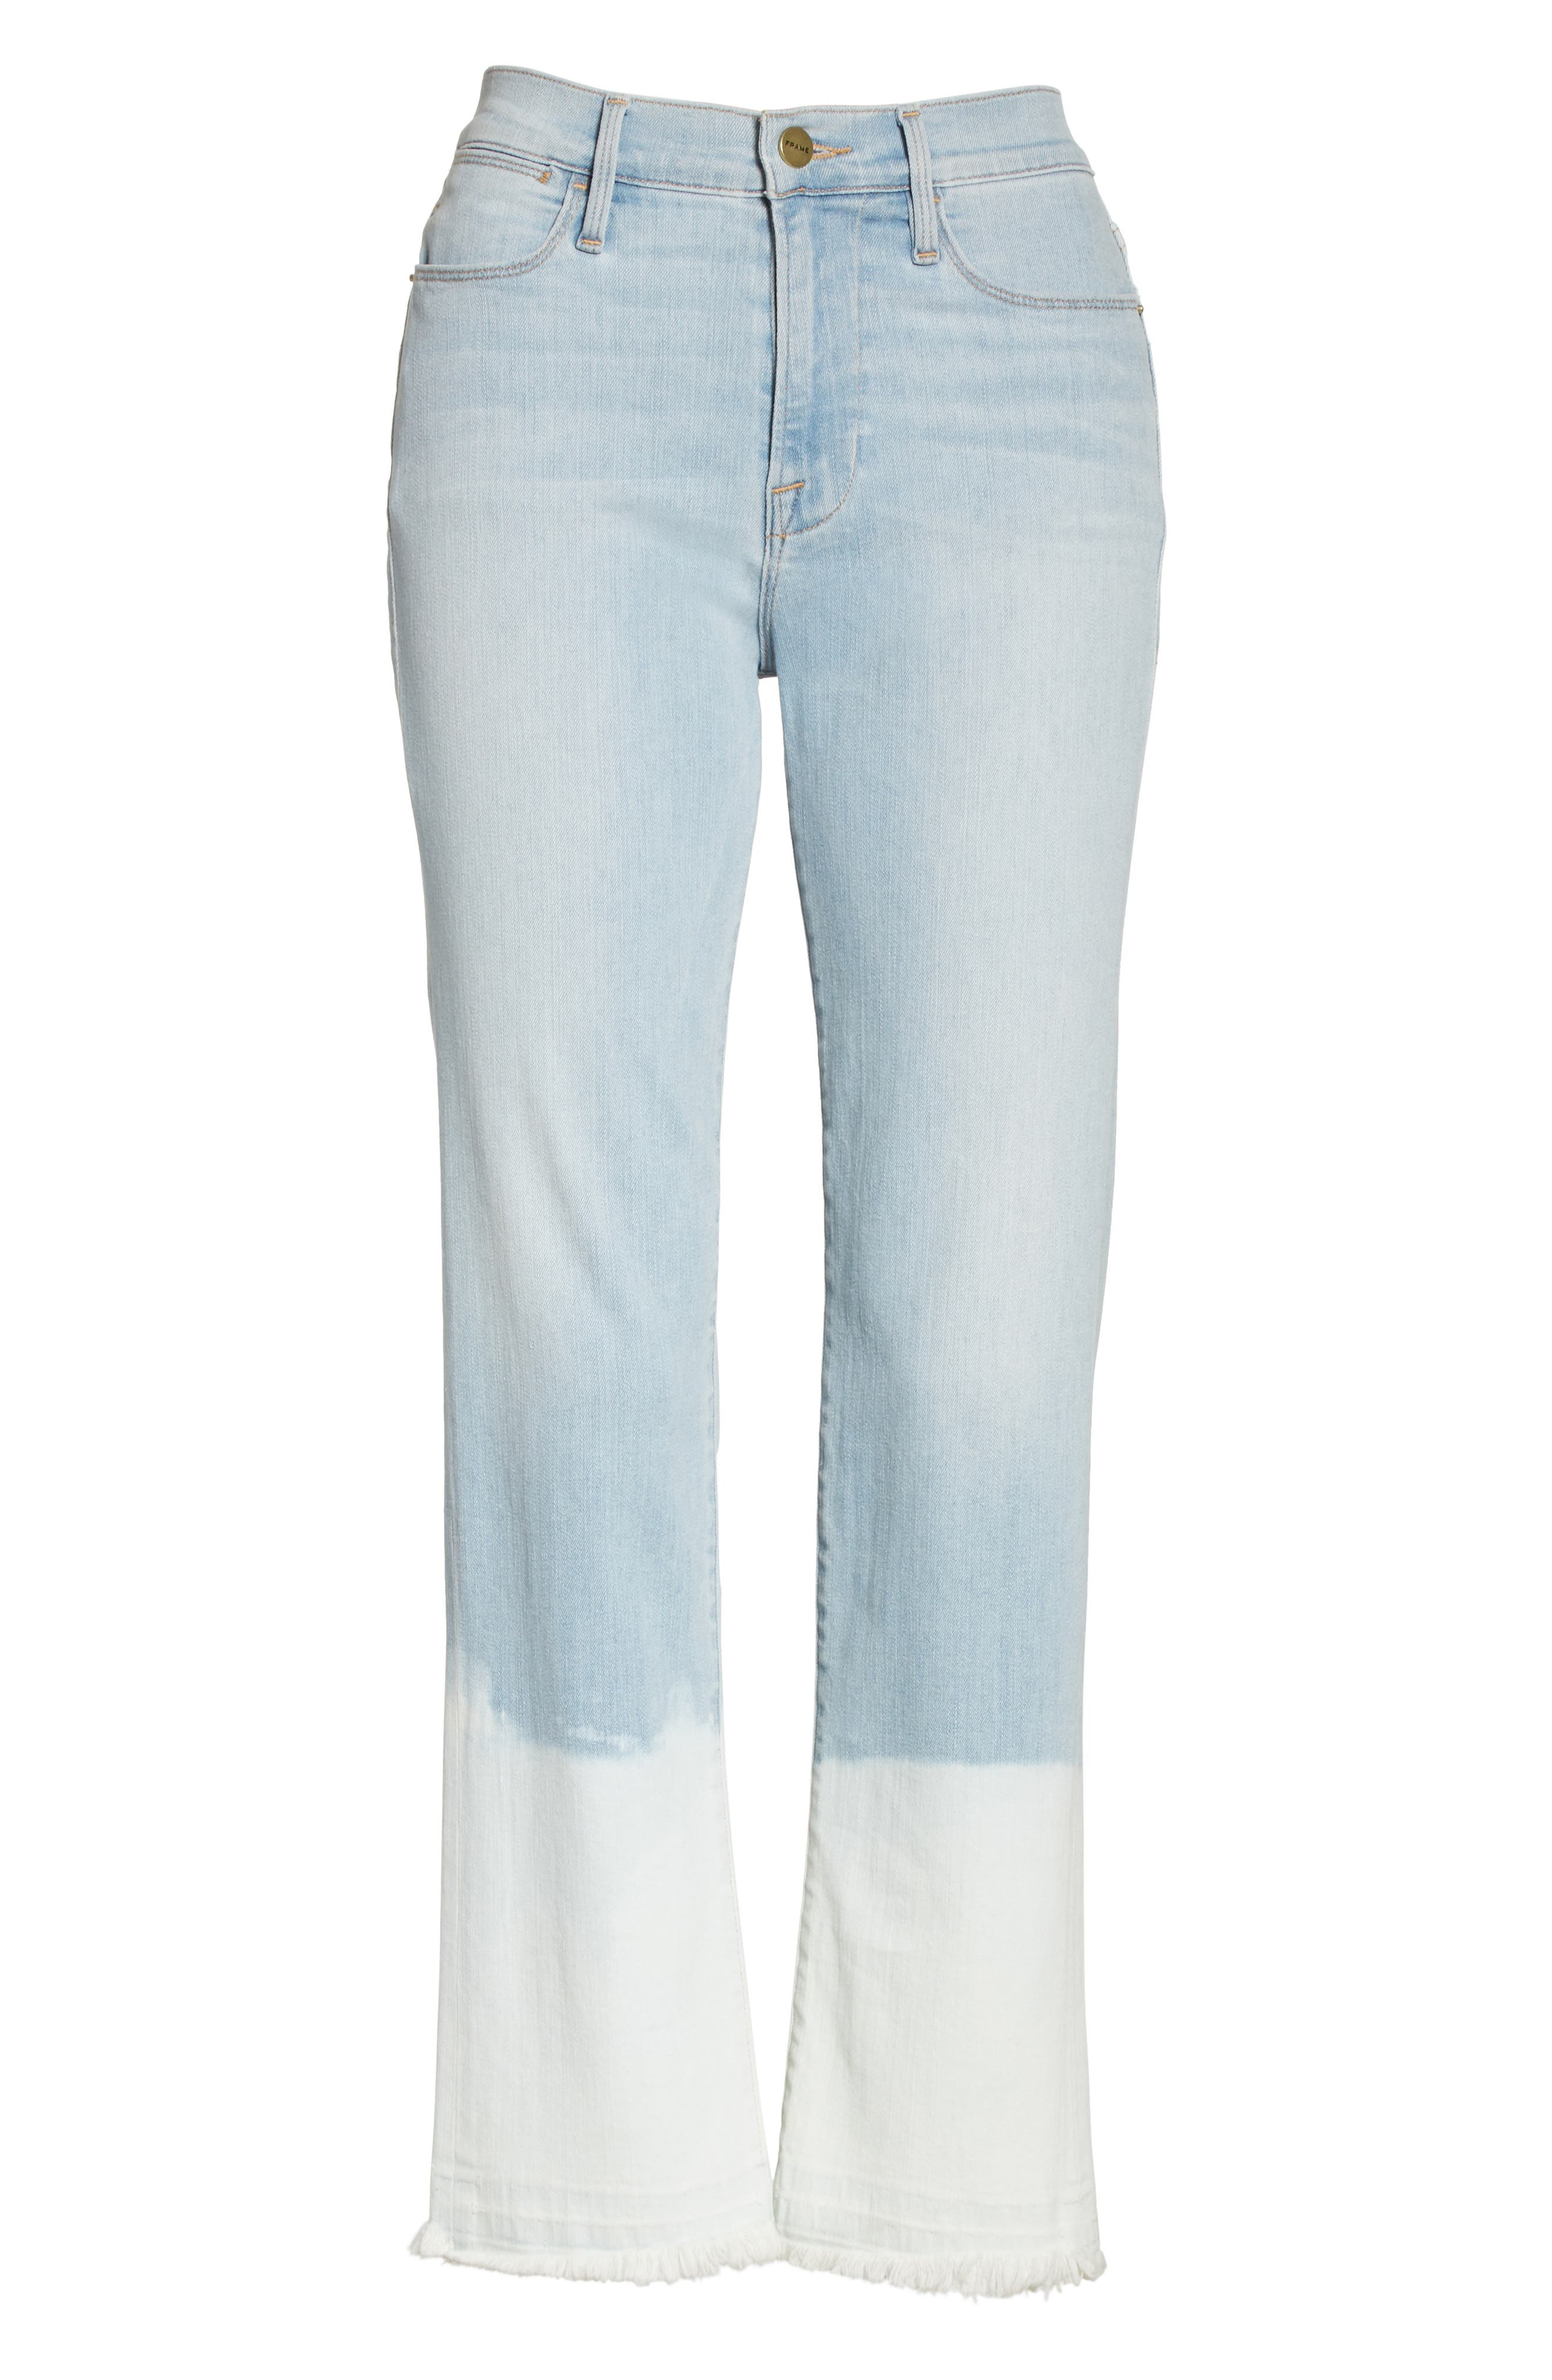 Le High Crop Straight Leg Jeans,                             Alternate thumbnail 8, color,                             Finchley